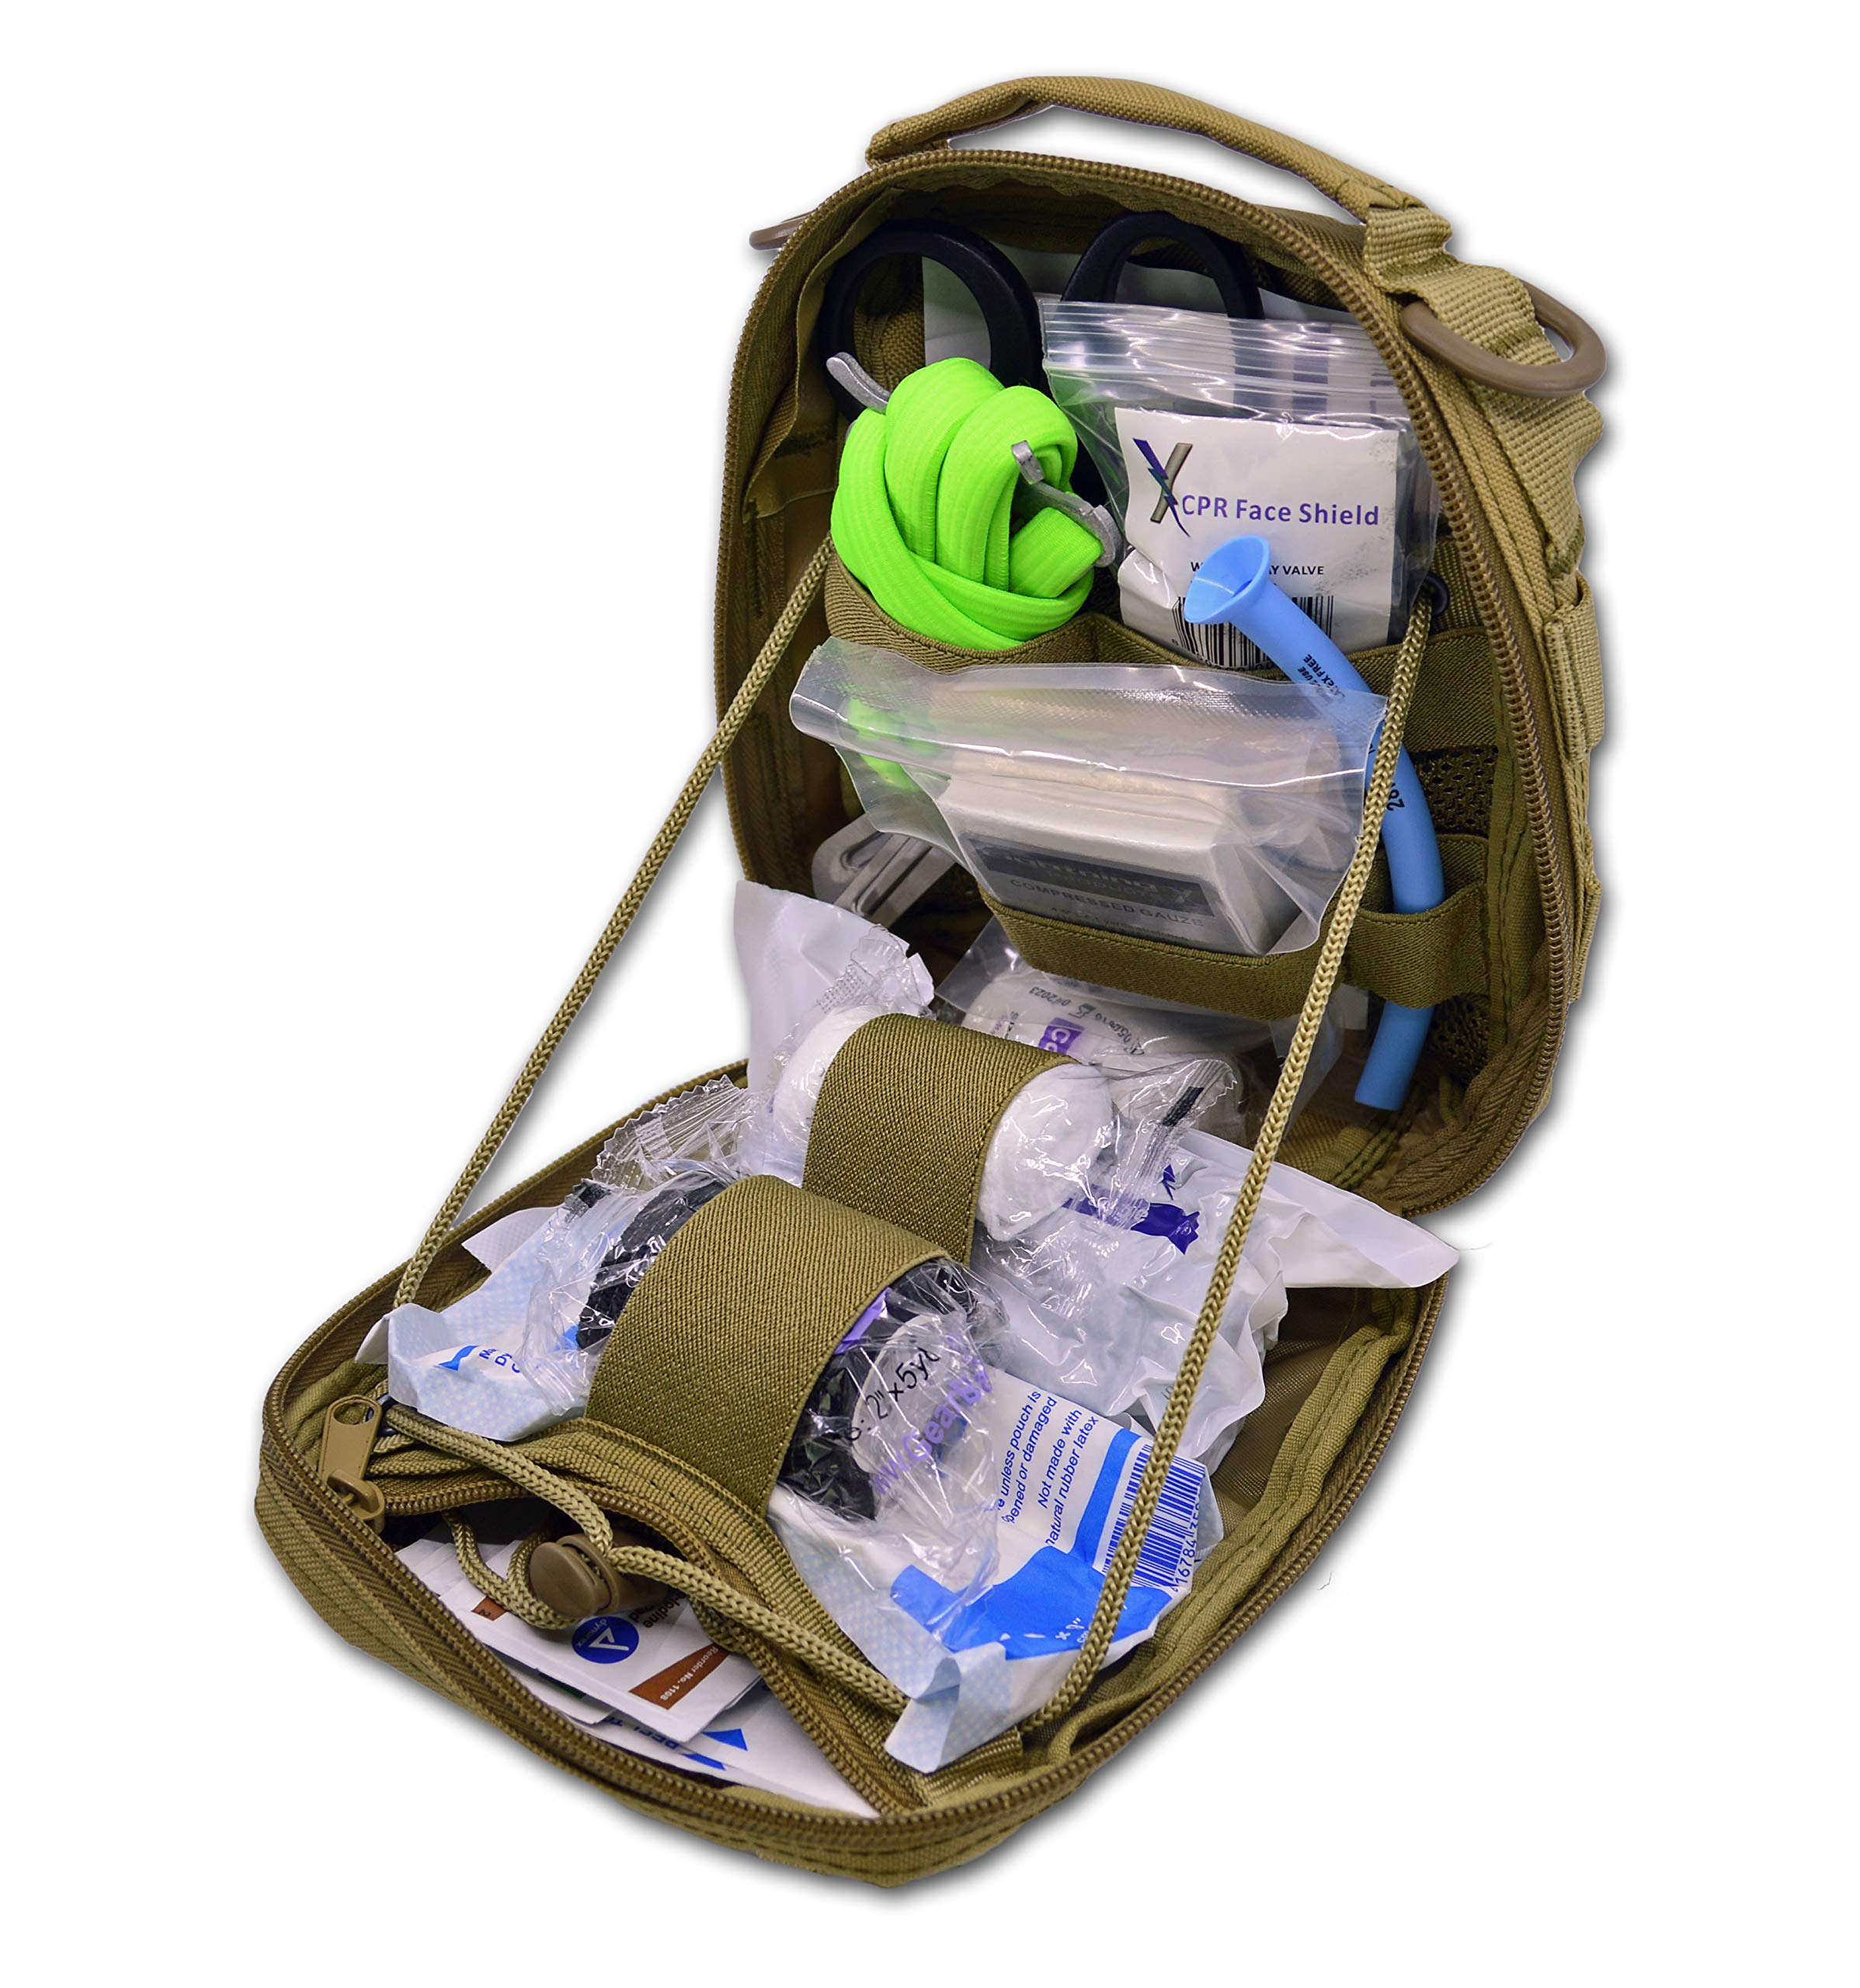 Lightning X Individual First Aid Trauma/Hemorrhage Control Kit in MOLLE IFAK Pouch Value Edition - TAN by Lightning X Products